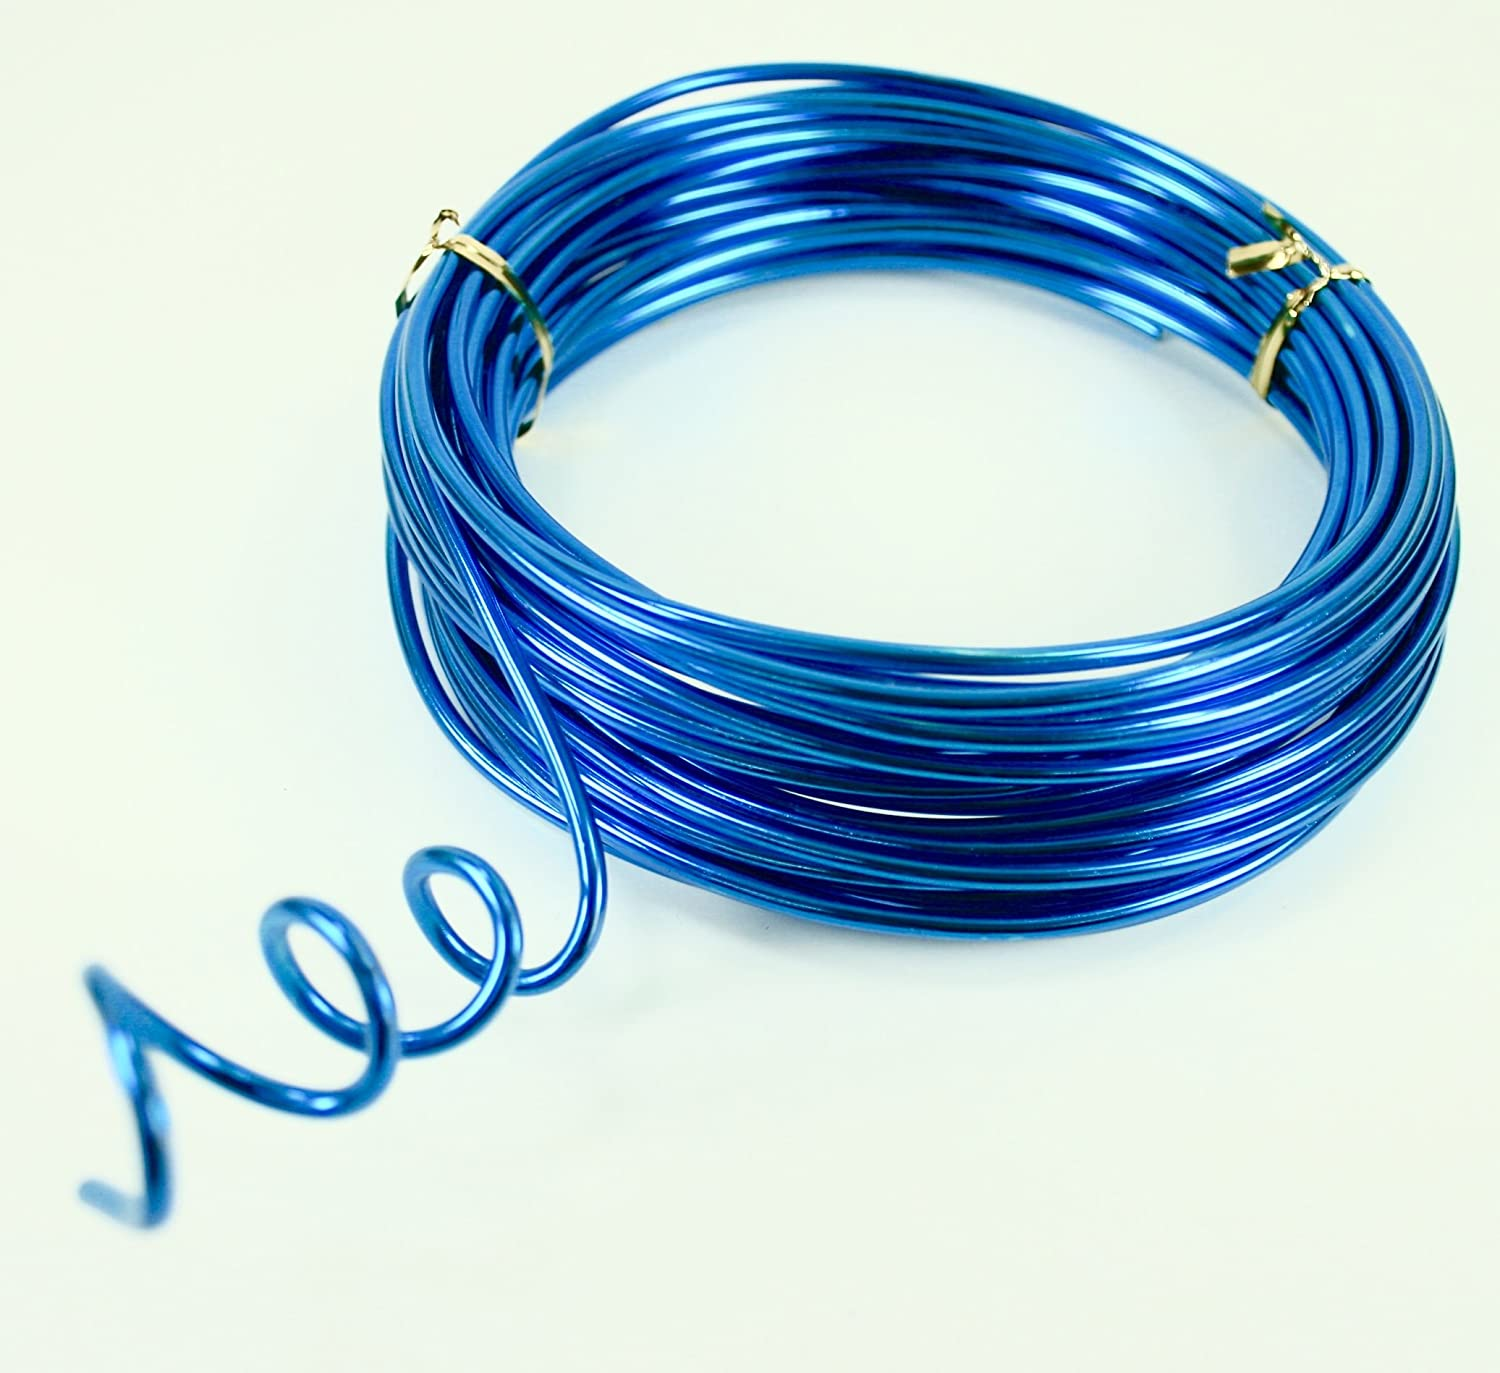 TURQUOISE Aluminum Wire Crafting, Floral or Jewelry Making embellishments 10 YDS